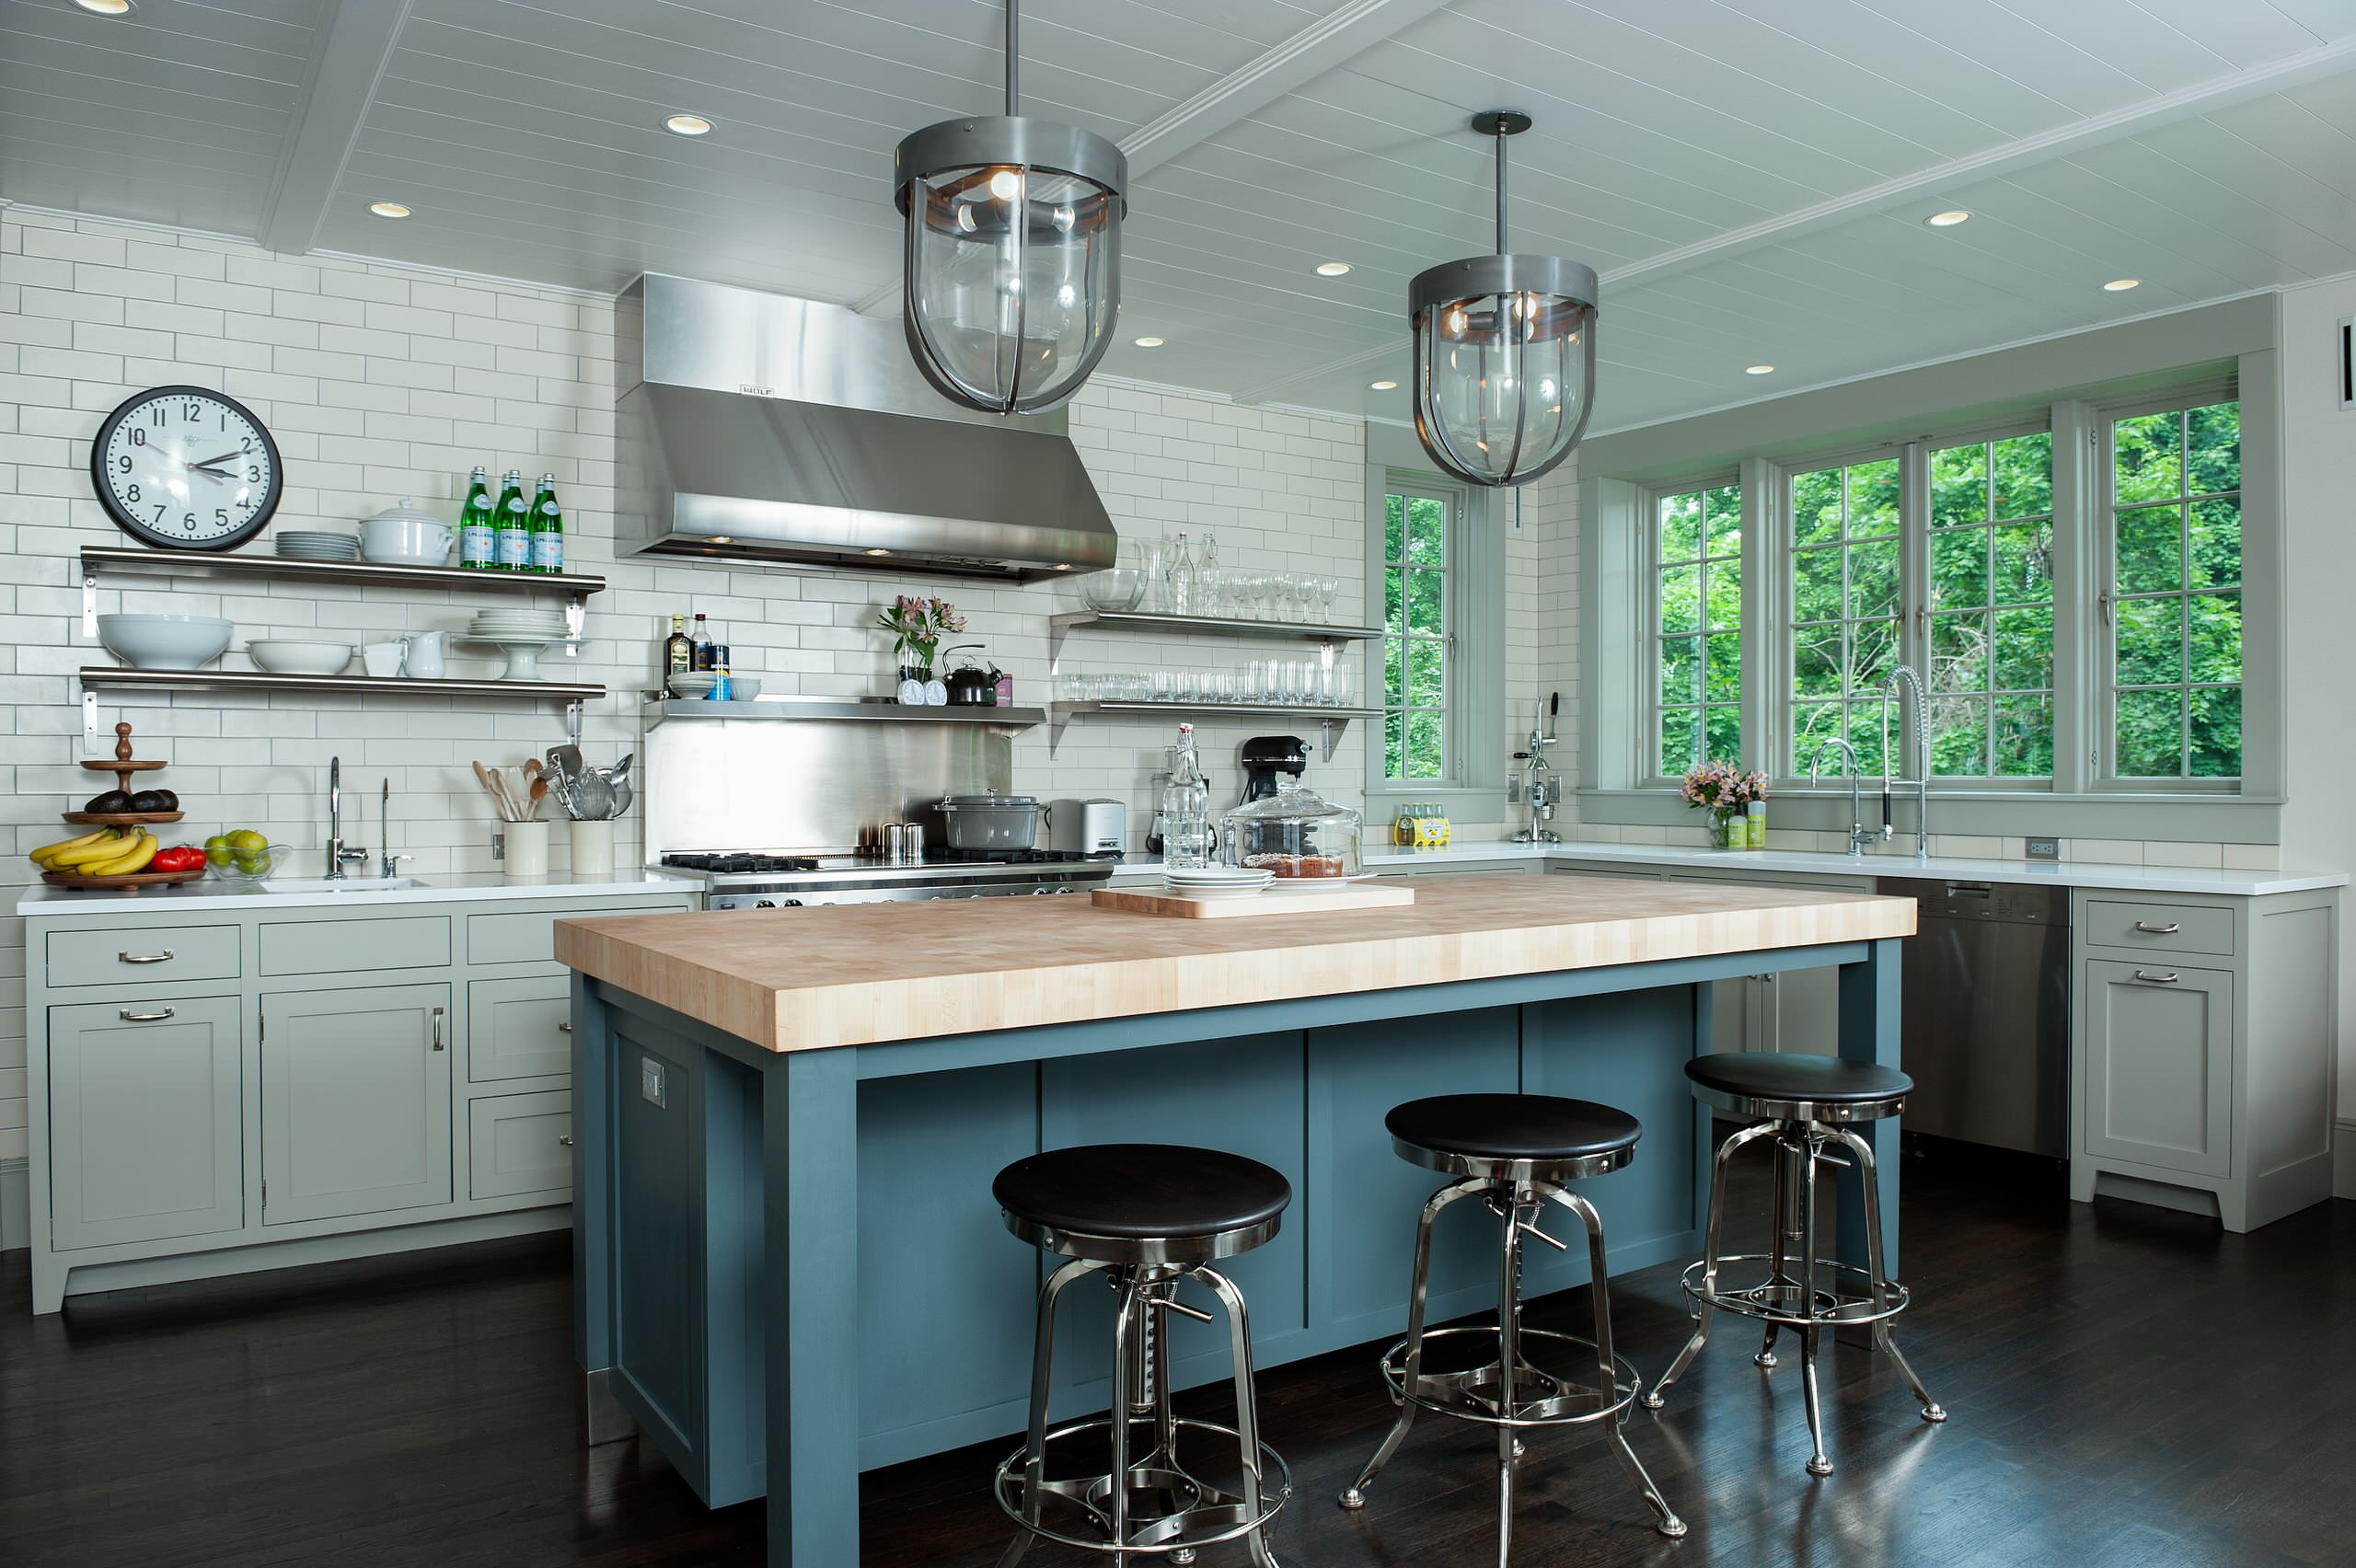 Dark Hardwood Floor With Custom Kitchen Islands And Modern Bar Stools In Traditional Kitchen With Pendant Lighting And Tile Wall Plus Hanging Shelves Also Paint Kitchen Cabinets